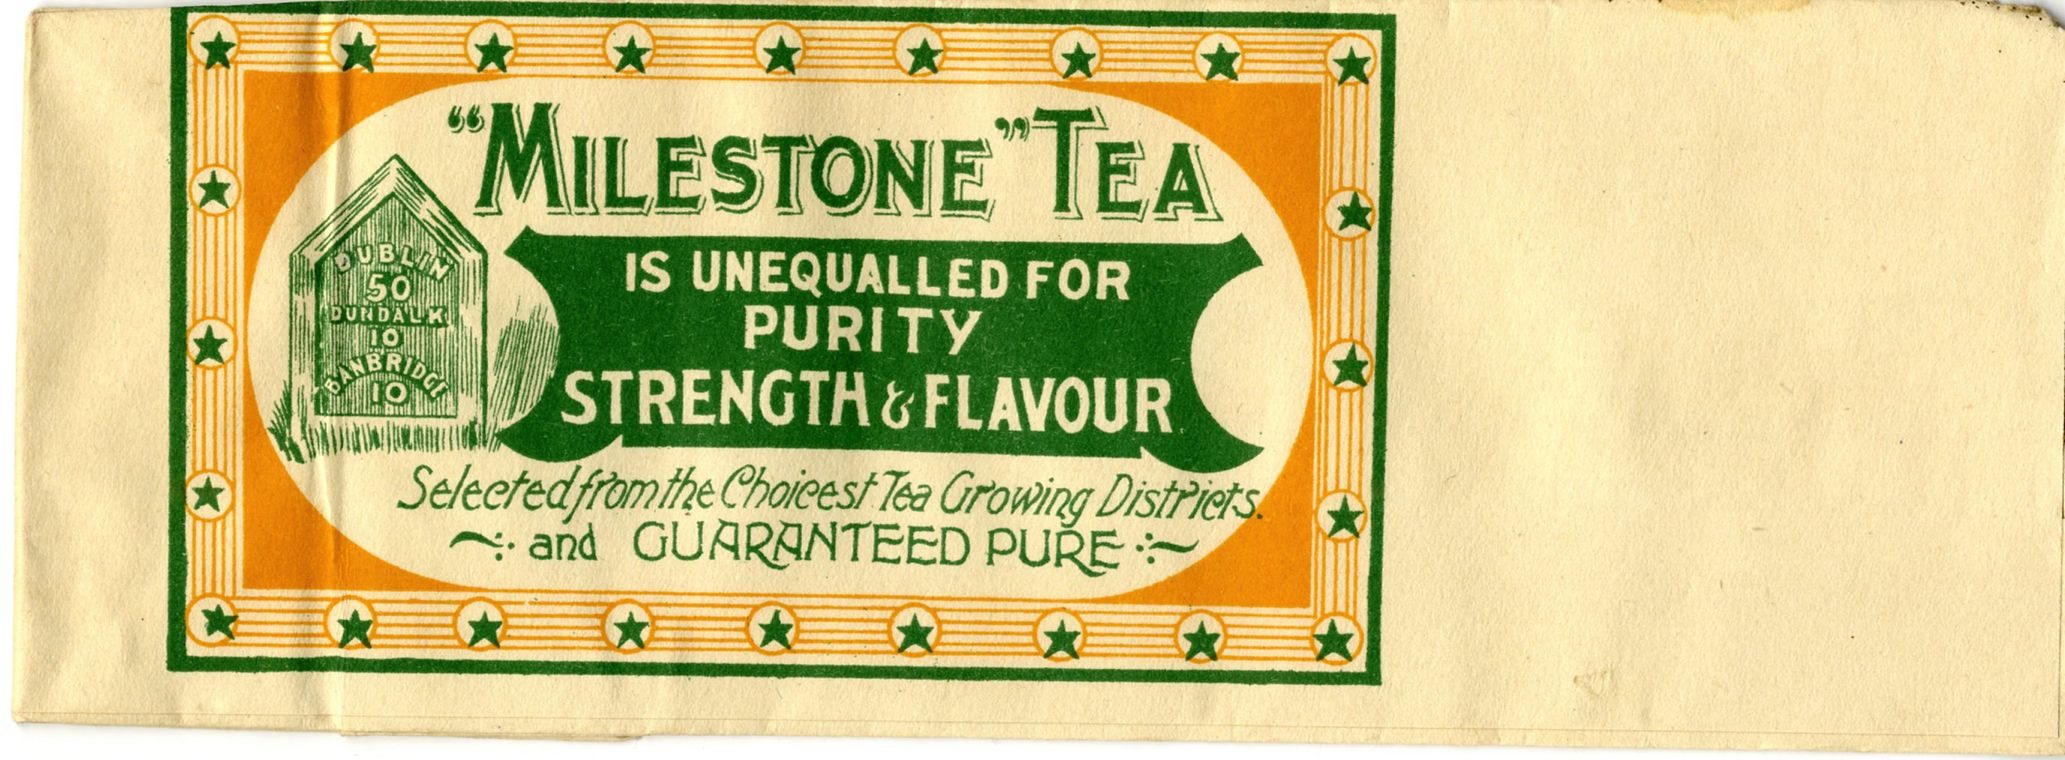 The Milestone was also renowned for its tea, it blended a wide variety of teas in store the packaging of which is illustrated here. This was in the days before tea bags, when tea was sold loose.   Newry and Mourne Museum